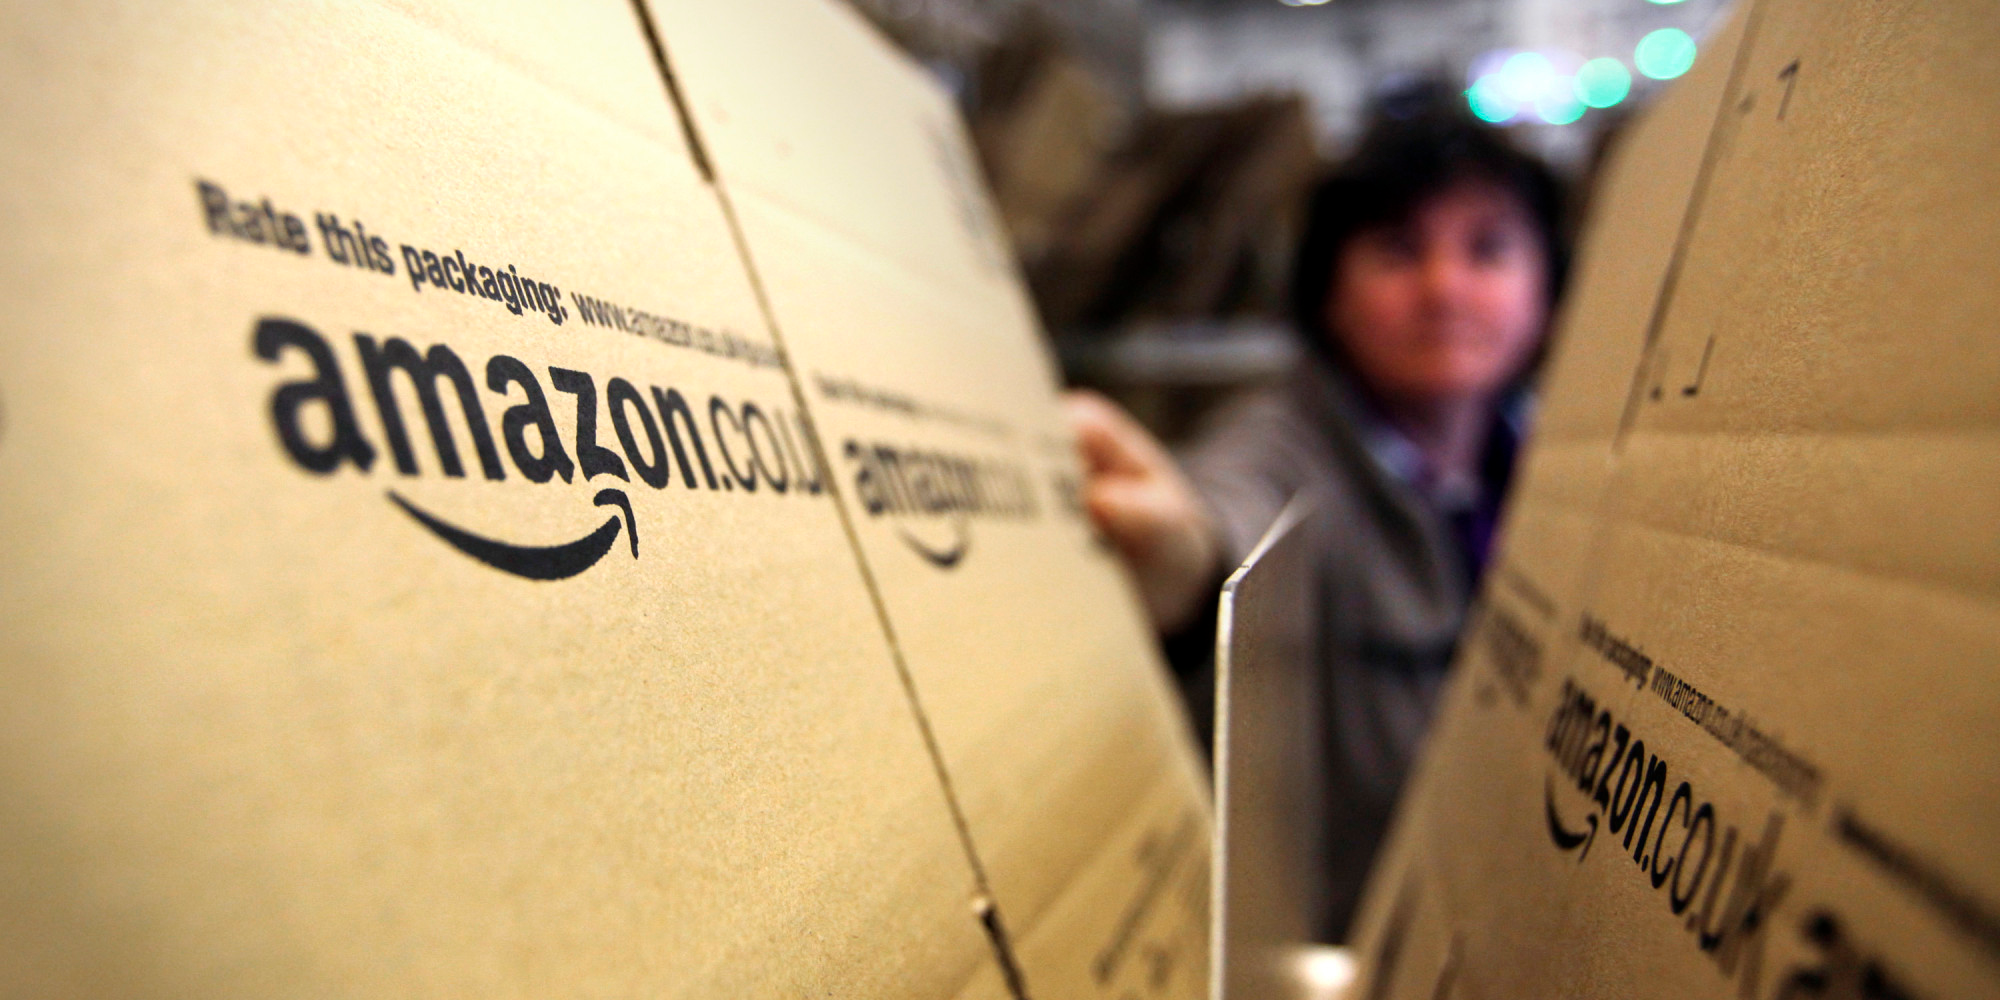 Here's What Amazon's Stock Price Should Be Based On A Price/Sales Analysis